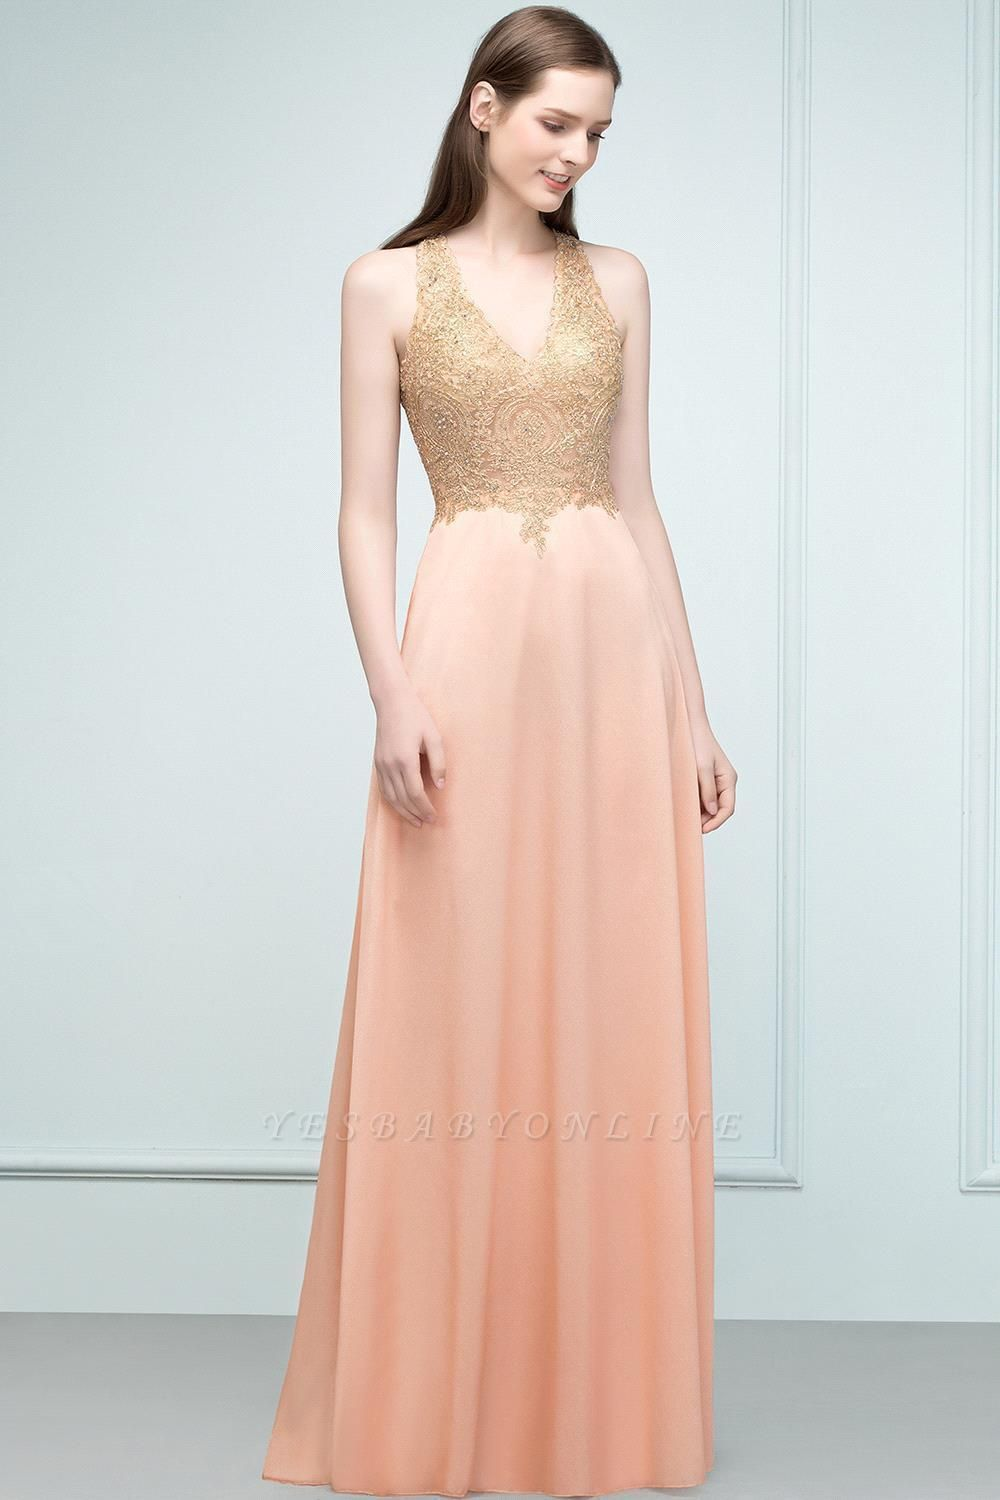 Cheap A-line Floor Length V-neck Sleeveless Appliques Chiffon Prom Dress in Stock